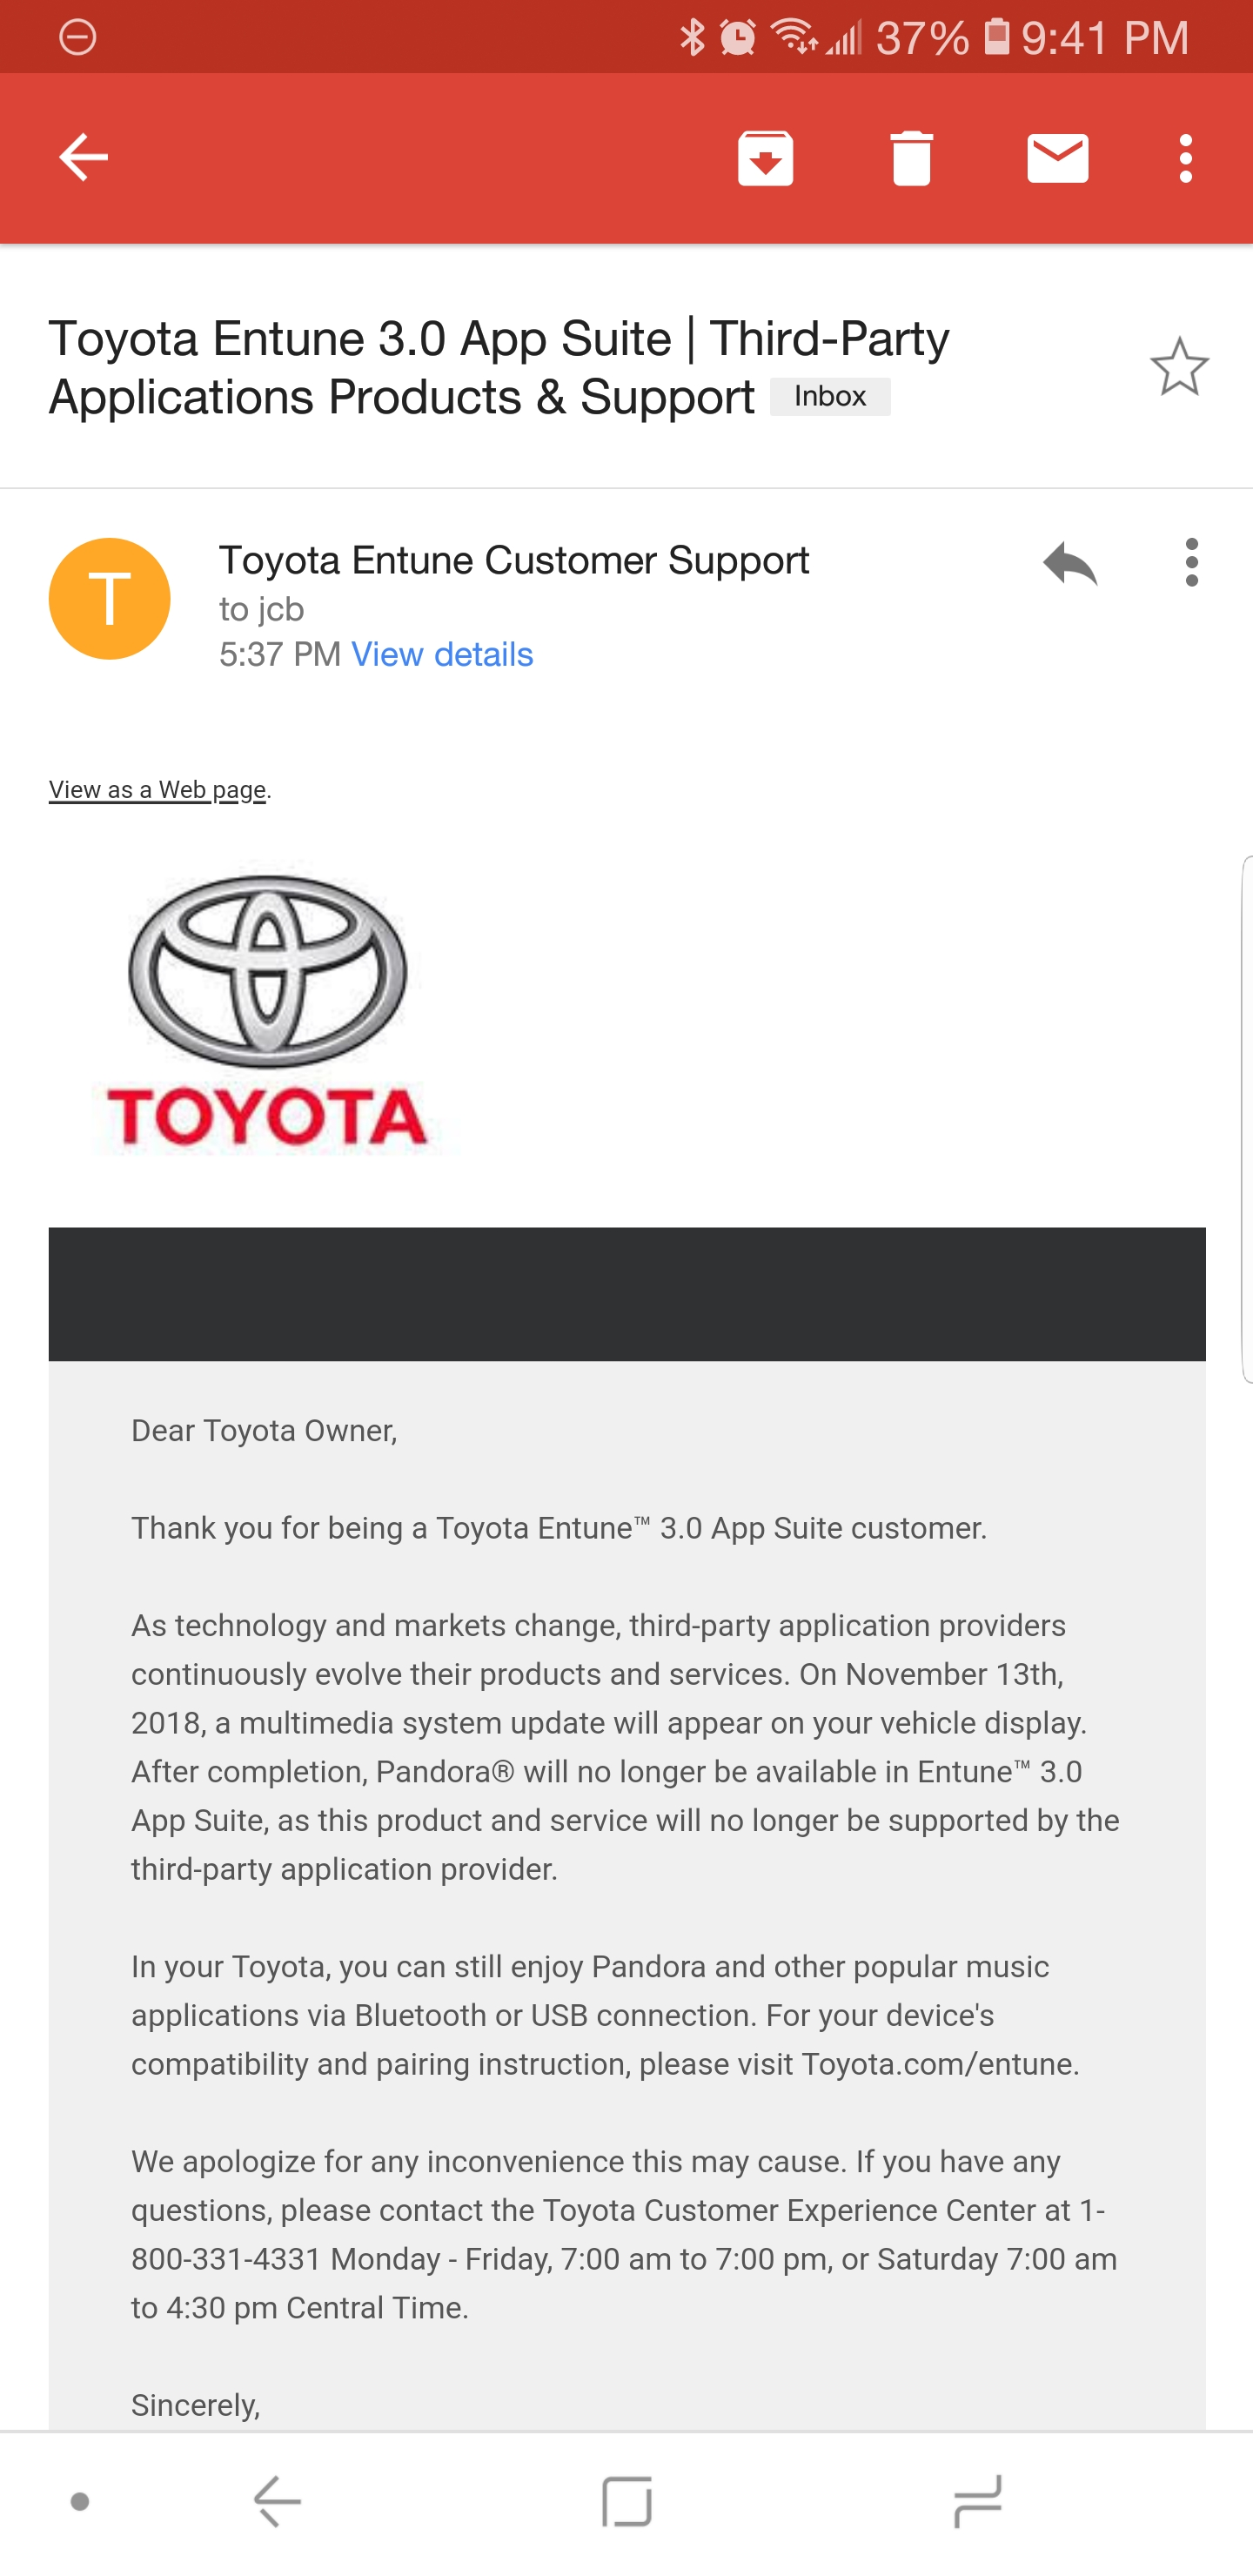 hight resolution of i emailed toyota to complain about pandora not working on entune got a response back saying they are dropping support for it as of november